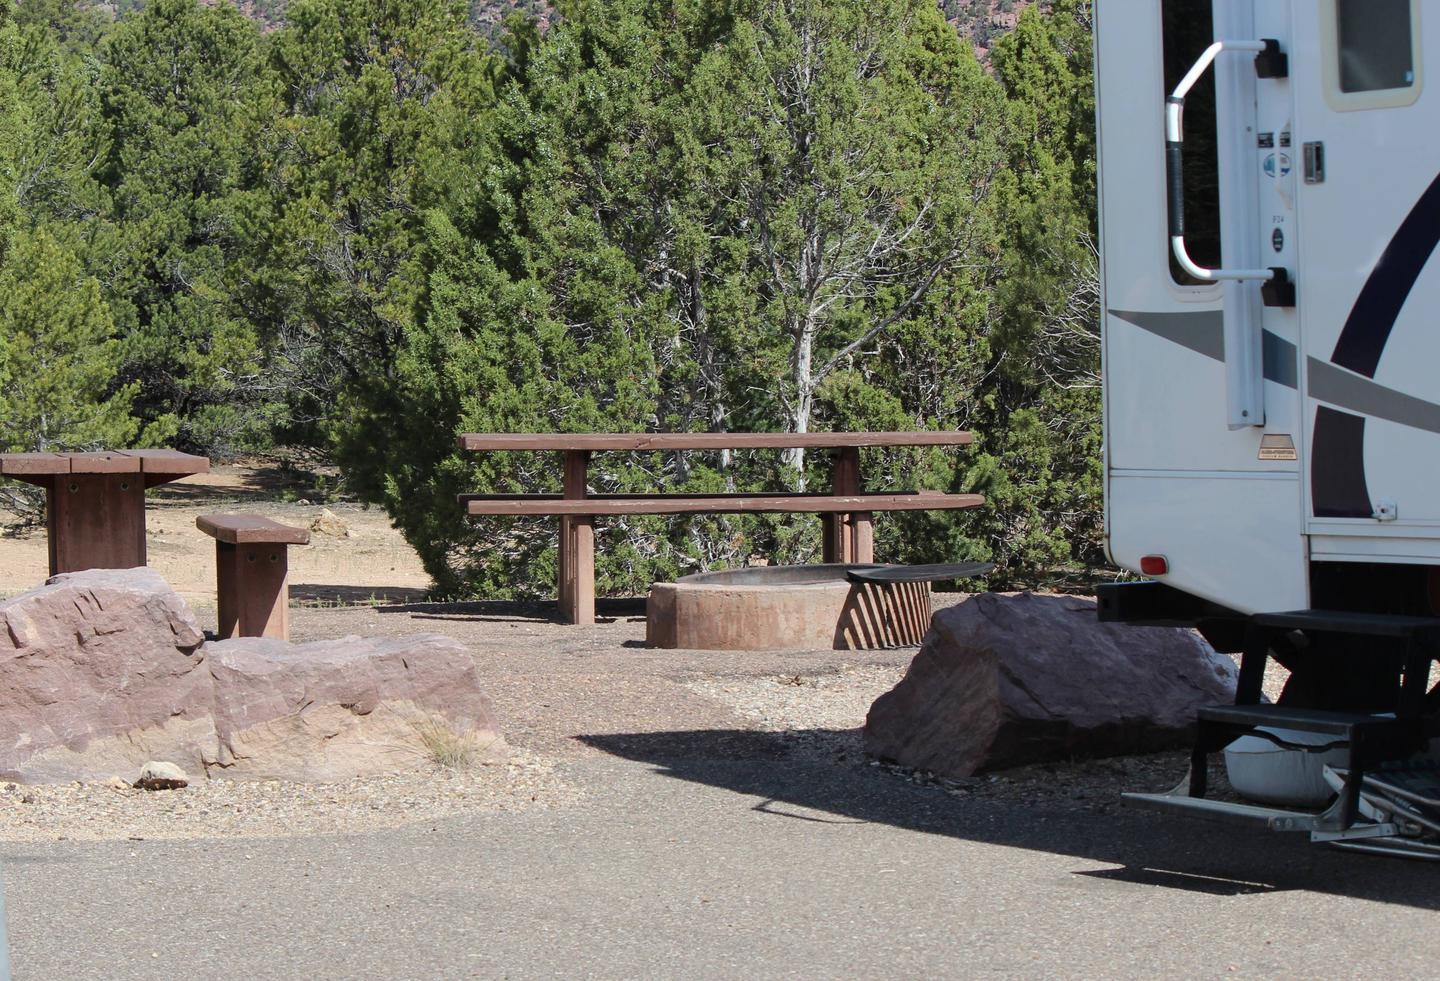 Picnic tables and fire pit behind in an area behind a travel trailer.Cedar Springs Campground: Site 6